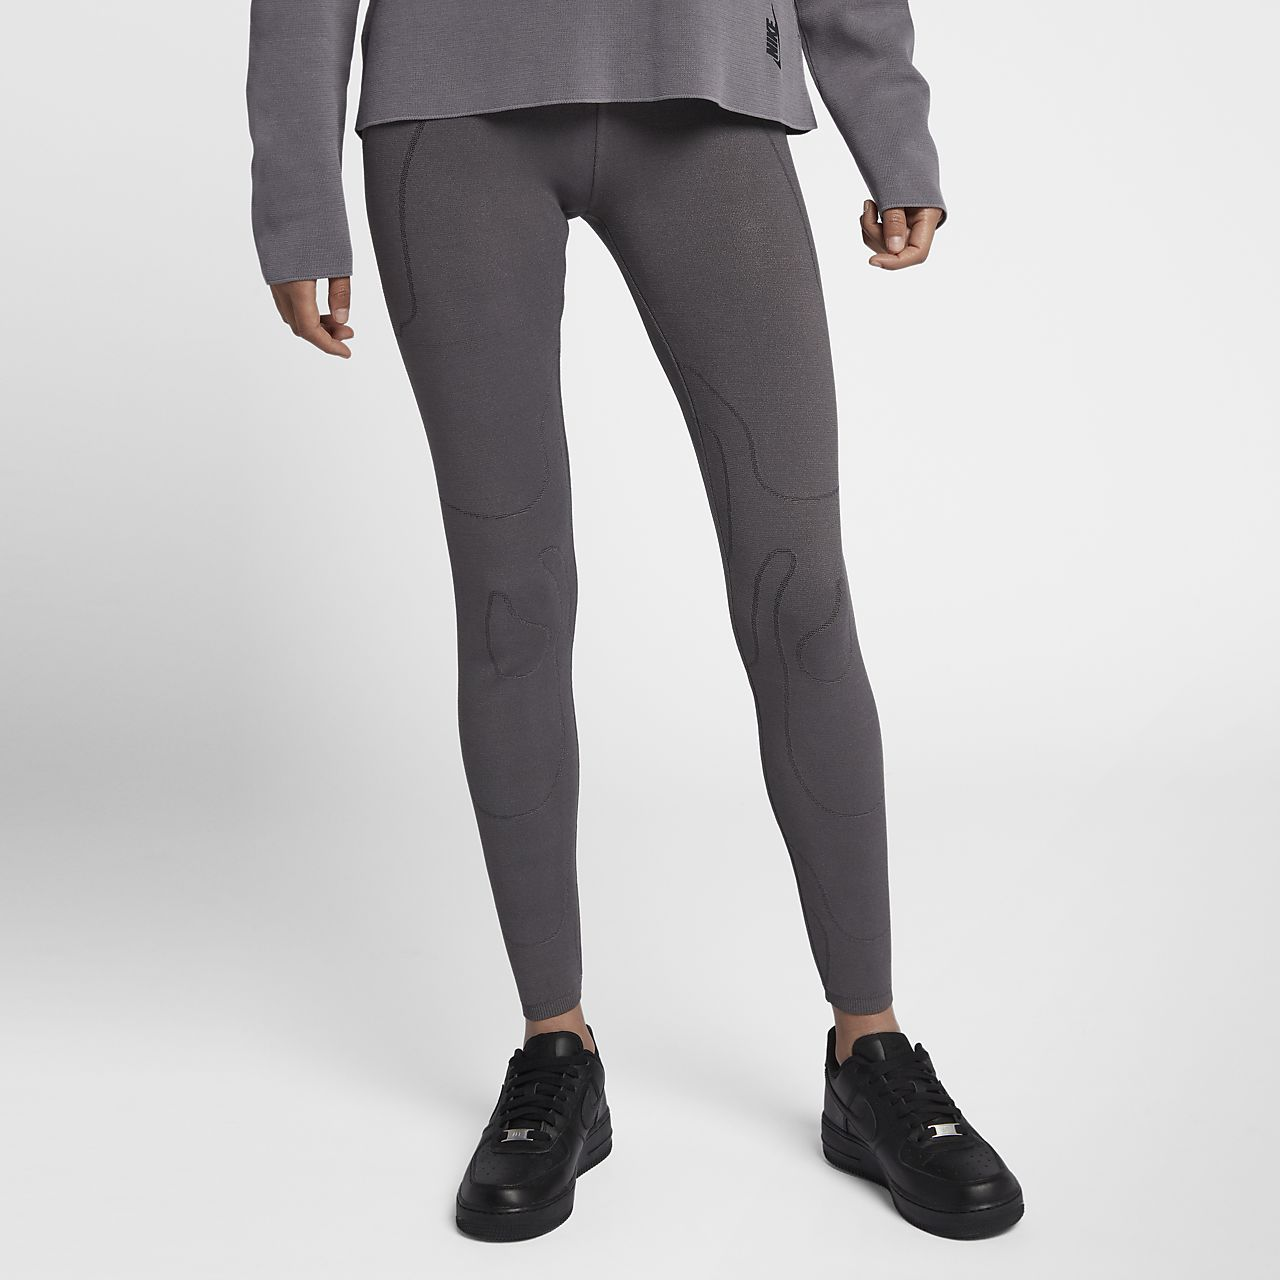 NikeLab Made in Italy Women's Knit Tights